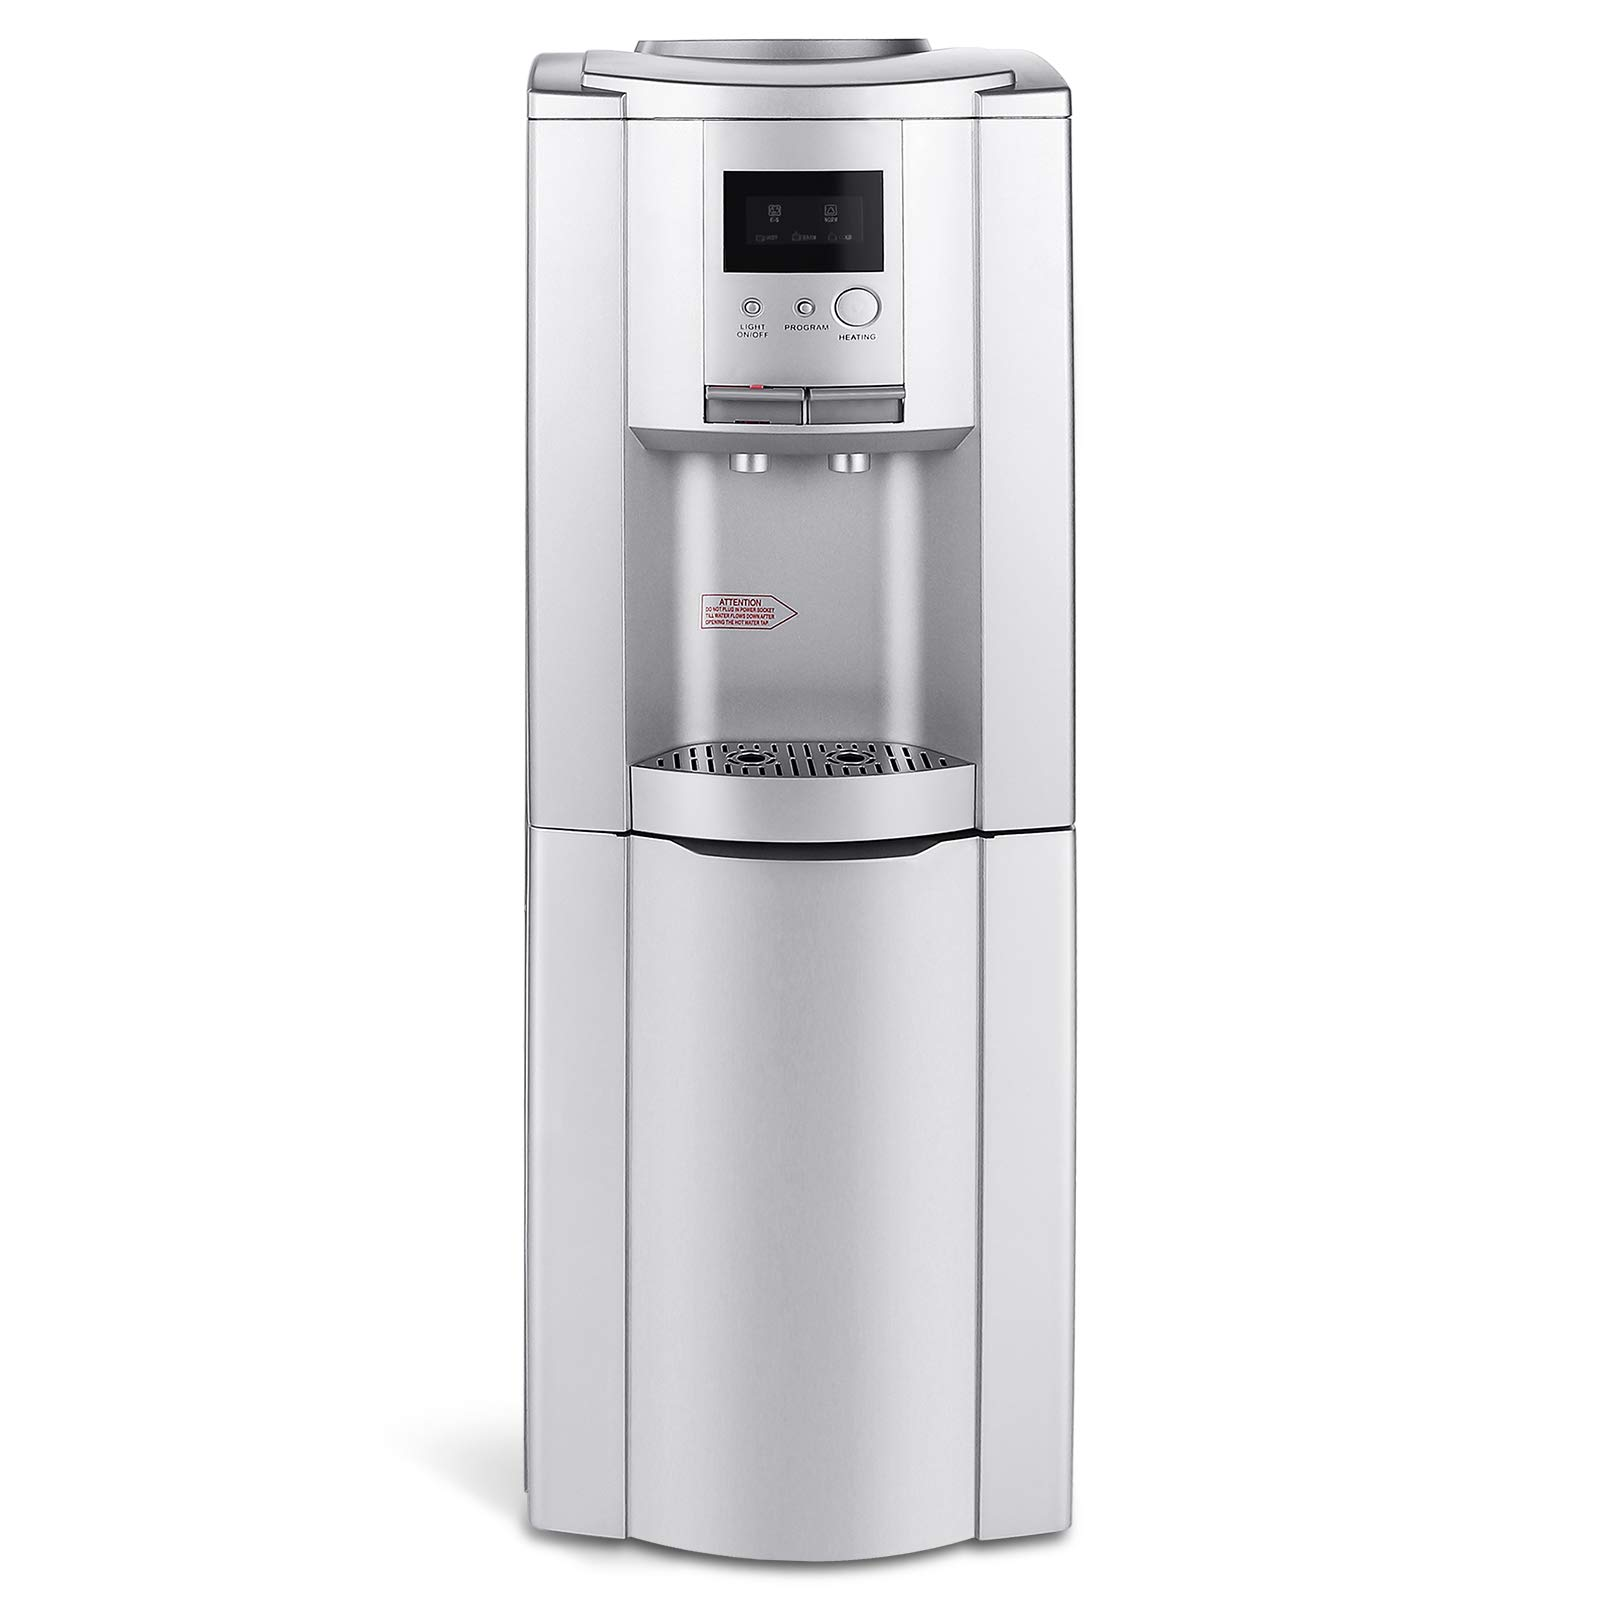 4-EVER Top Loading 5 Gallon Water Cooler Dispenser Freestanding Water Dispenser,Storage Cabinet Hot and Cold Water,LED Display, Silver